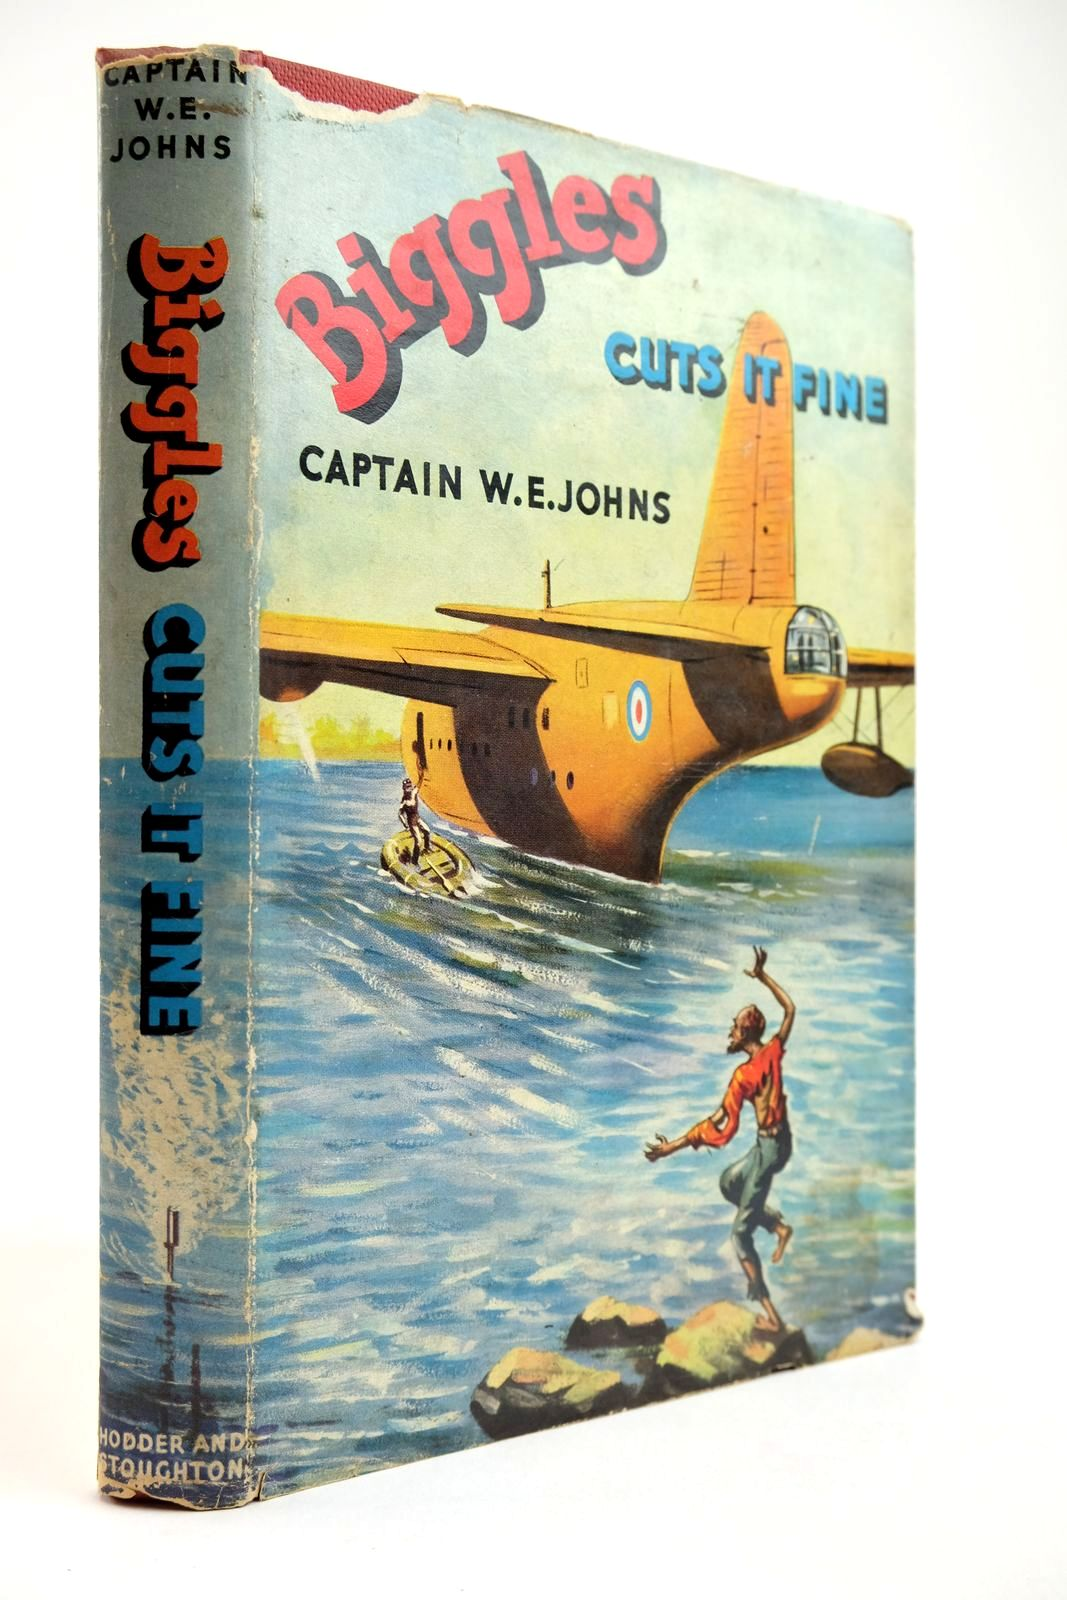 Photo of BIGGLES CUTS IT FINE written by Johns, W.E. illustrated by Stead, Studio published by Hodder & Stoughton (STOCK CODE: 2134081)  for sale by Stella & Rose's Books